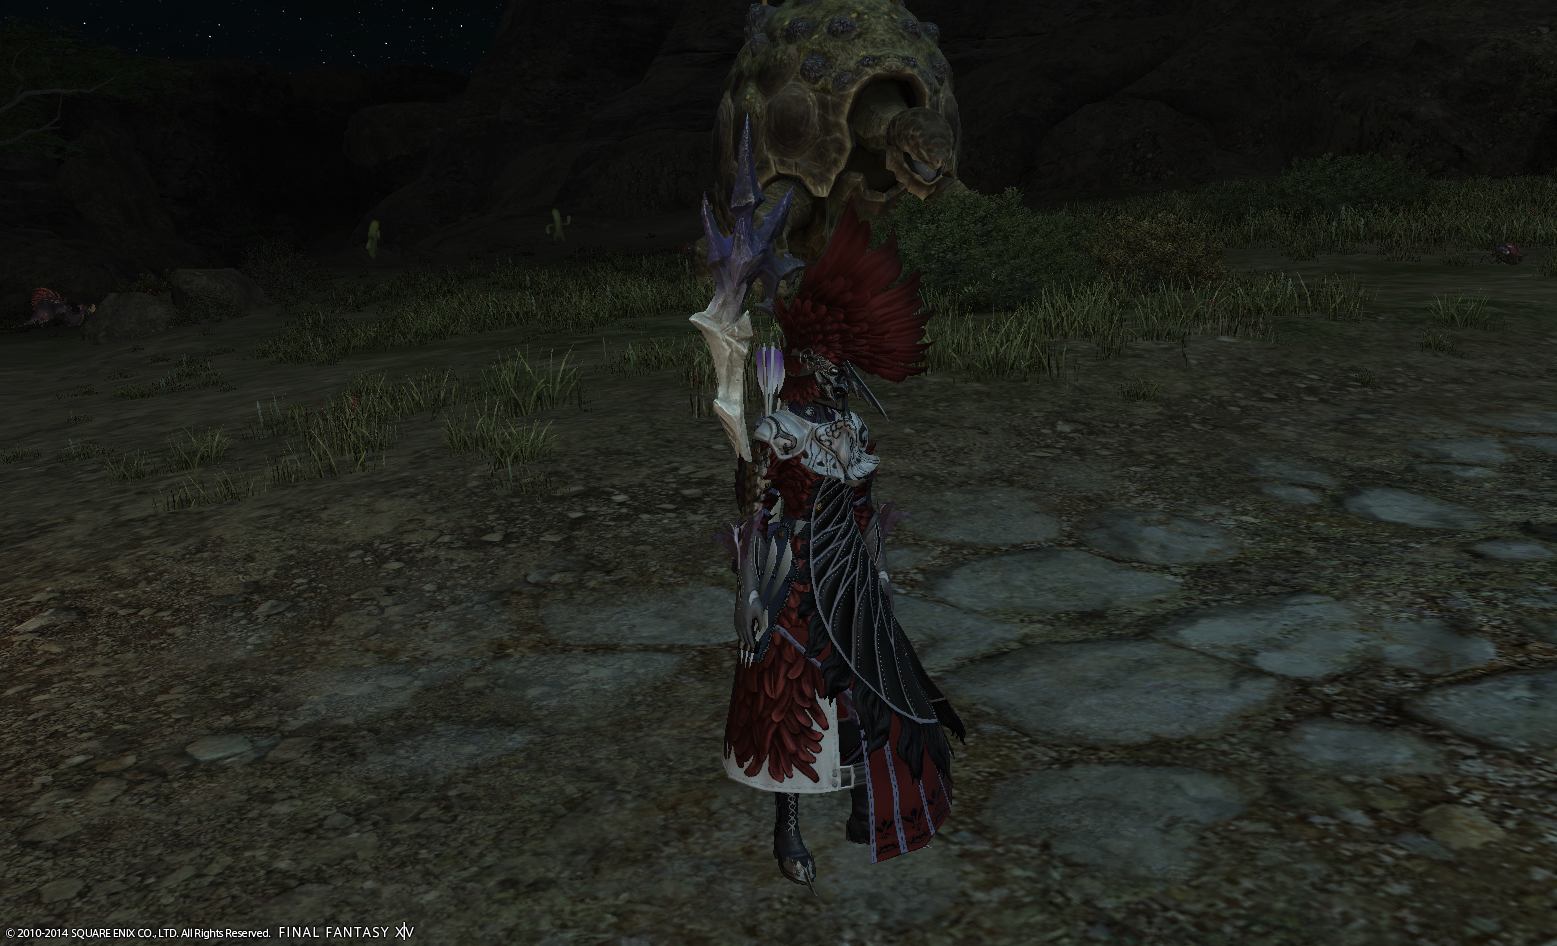 yugl ffxiv fluid auraing cliff stance people cleric hahah thread discussion sleep killed they